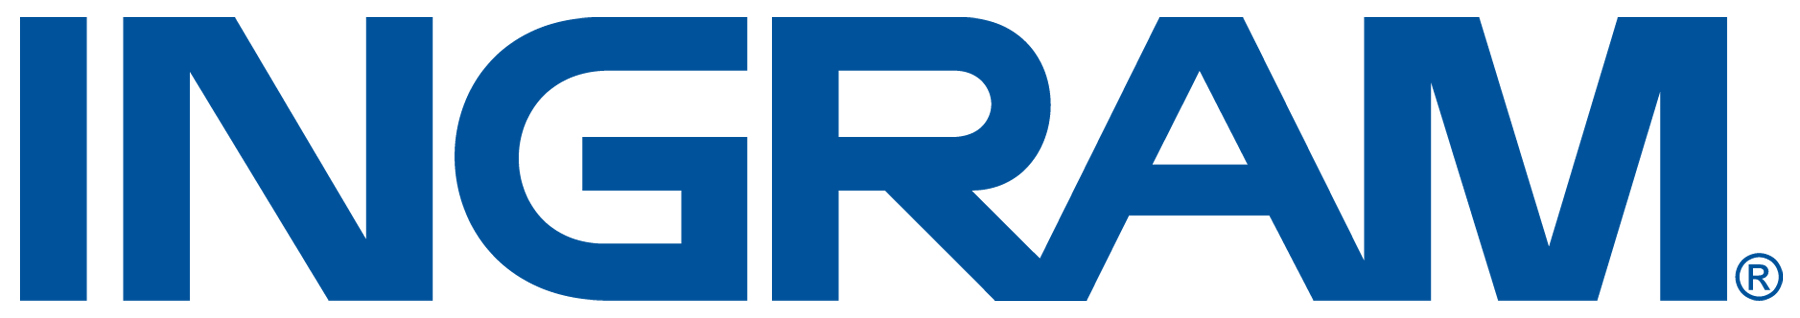 Ingram_logo.jpg